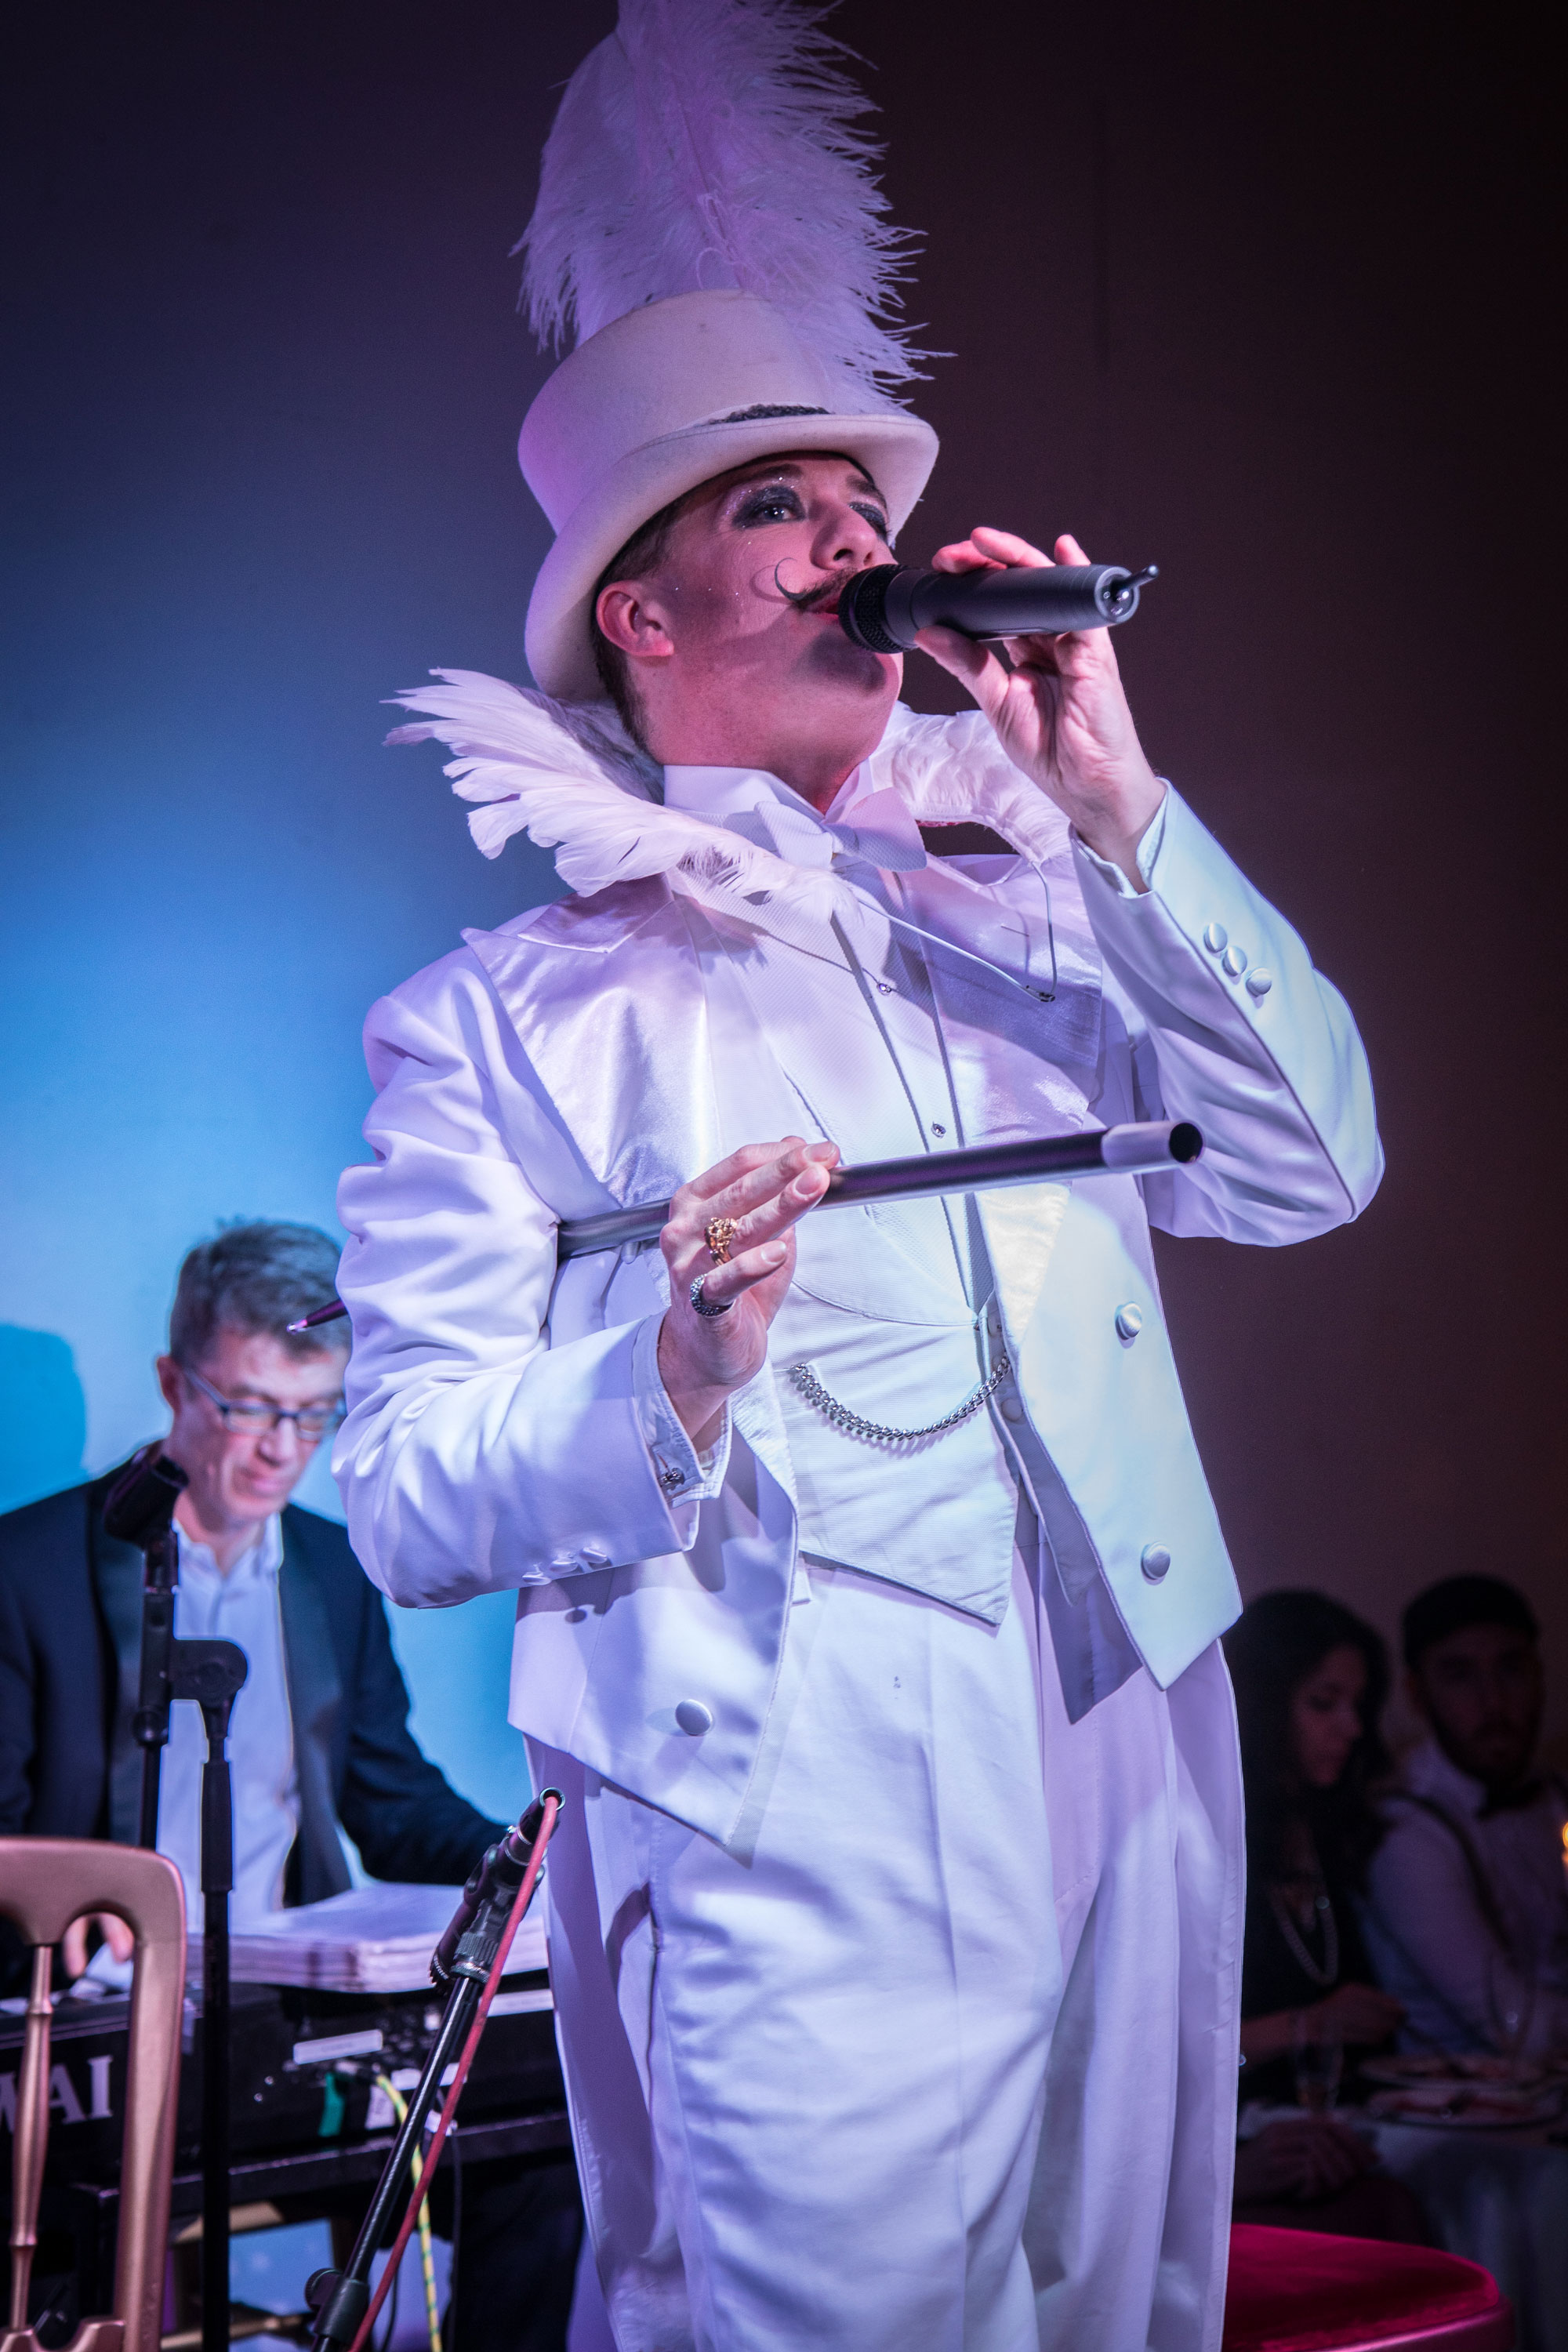 Cabaret host Champagne Charlie in a white suit